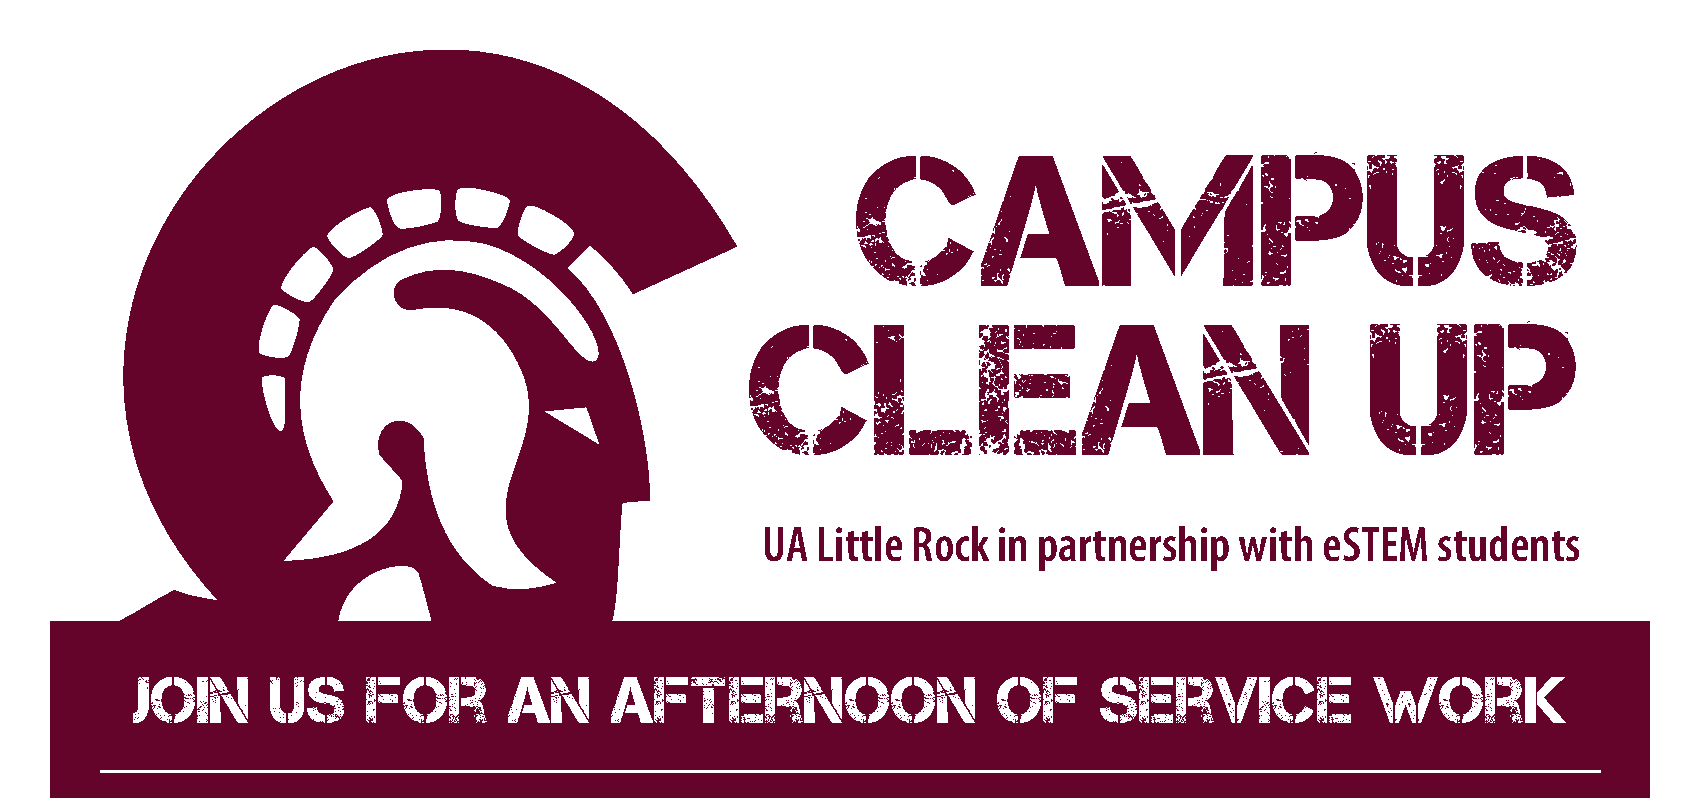 Two University of Arkansas at Little Rock student organizations are leading the charge to beautify campus by organizing volunteer campus cleanup days on Friday, Feb. 7, and Saturday, Feb. 8.